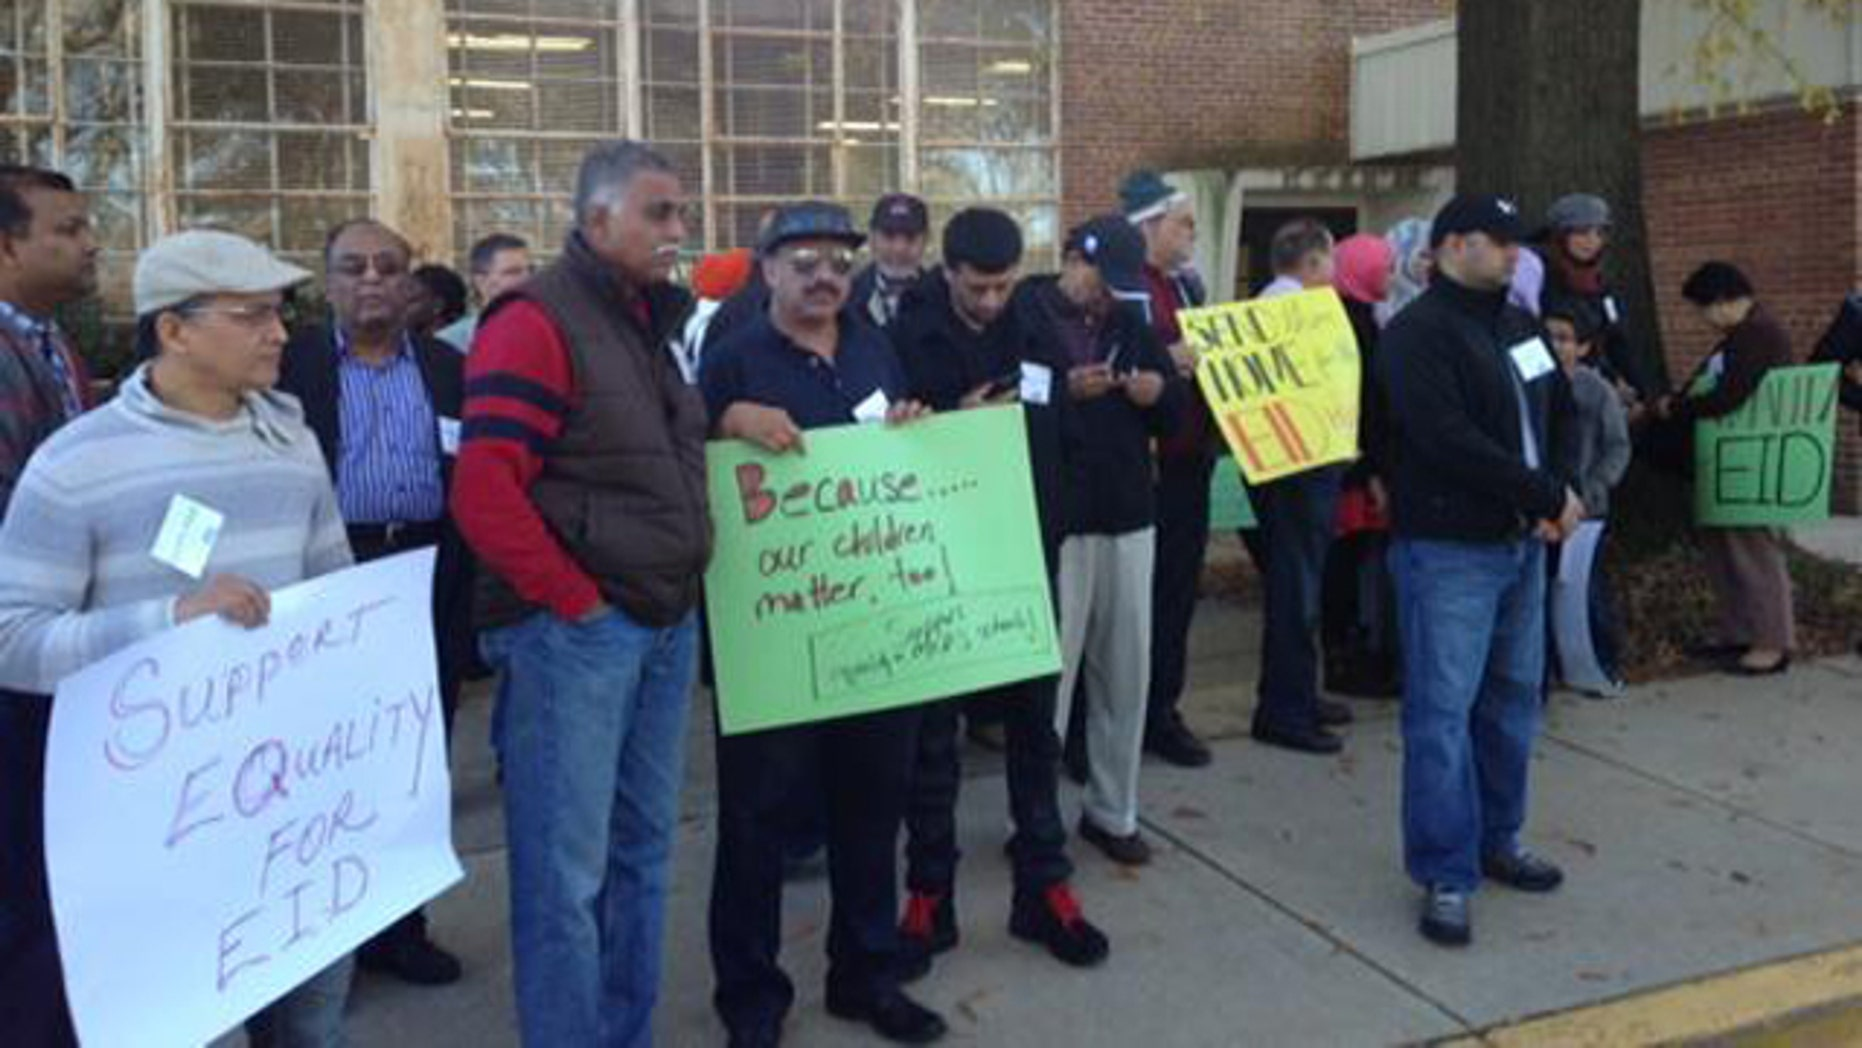 November 11, 2014: Muslims in Montgomery County, Md. gather outside a meeting of the county's school board to demand that the Muslim holiday of Eid al-Ahad receive recognition as an official religious holiday off from school. (MyFoxDC.com)